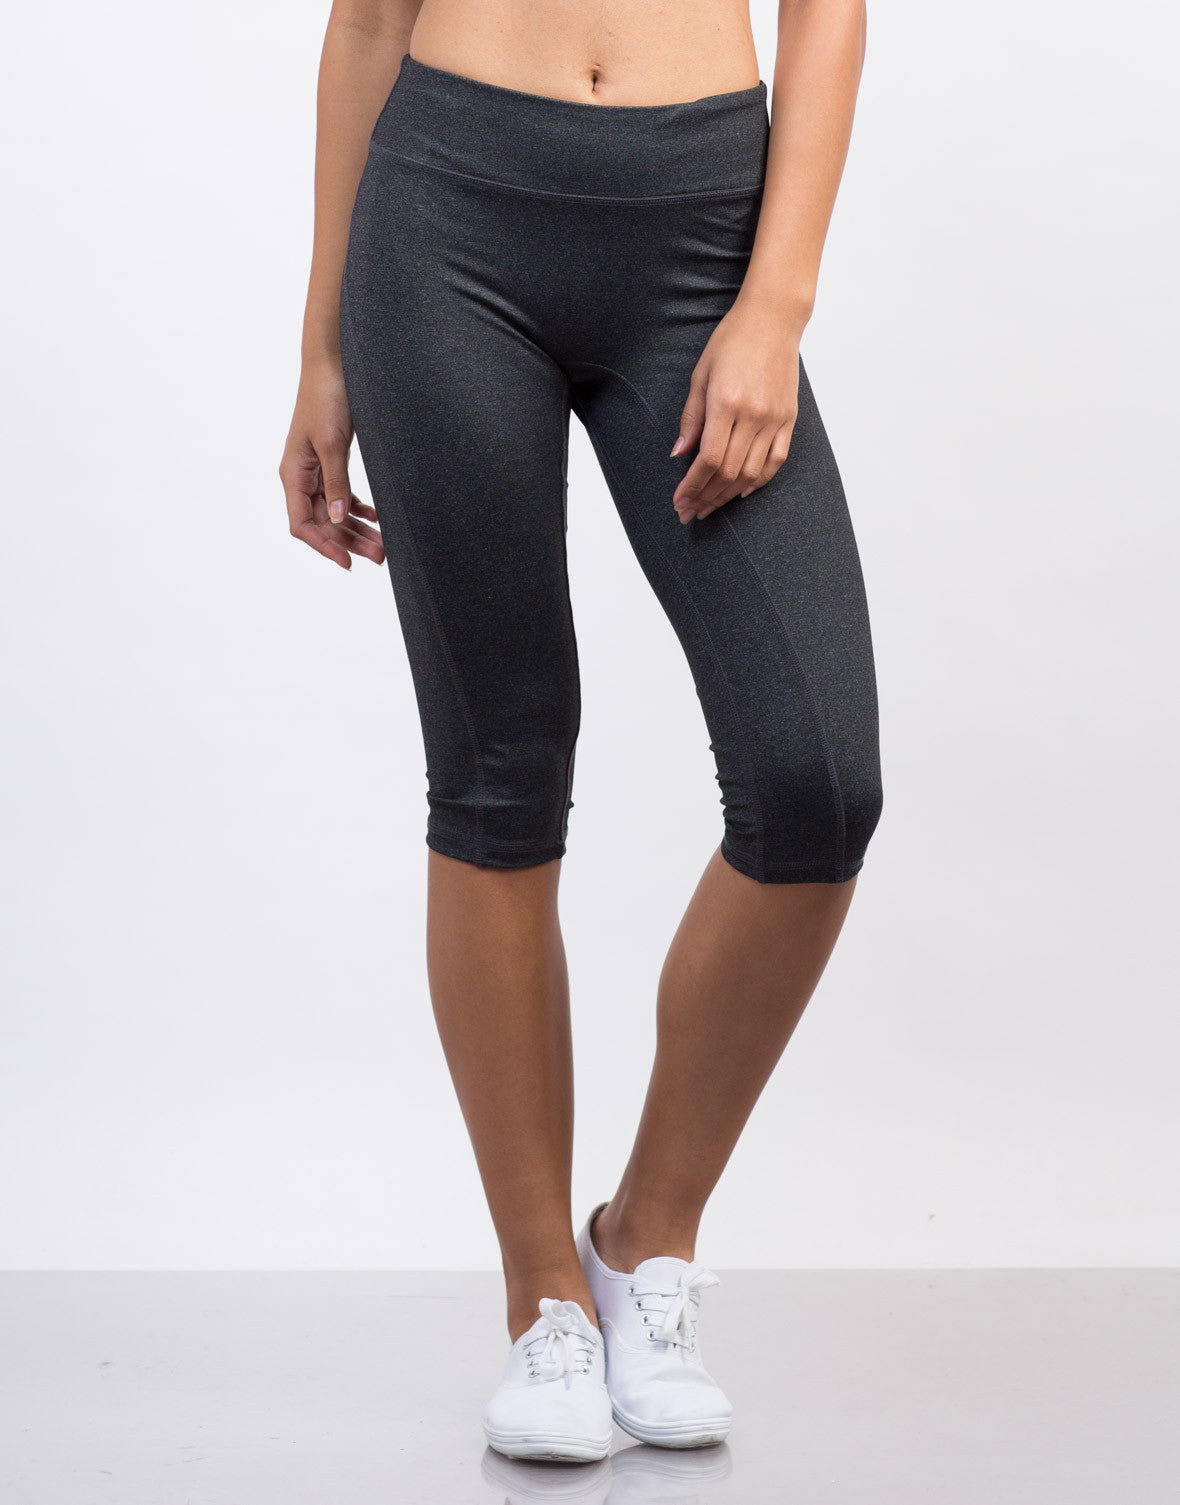 Front View of Nylon Activewear Capri Leggings